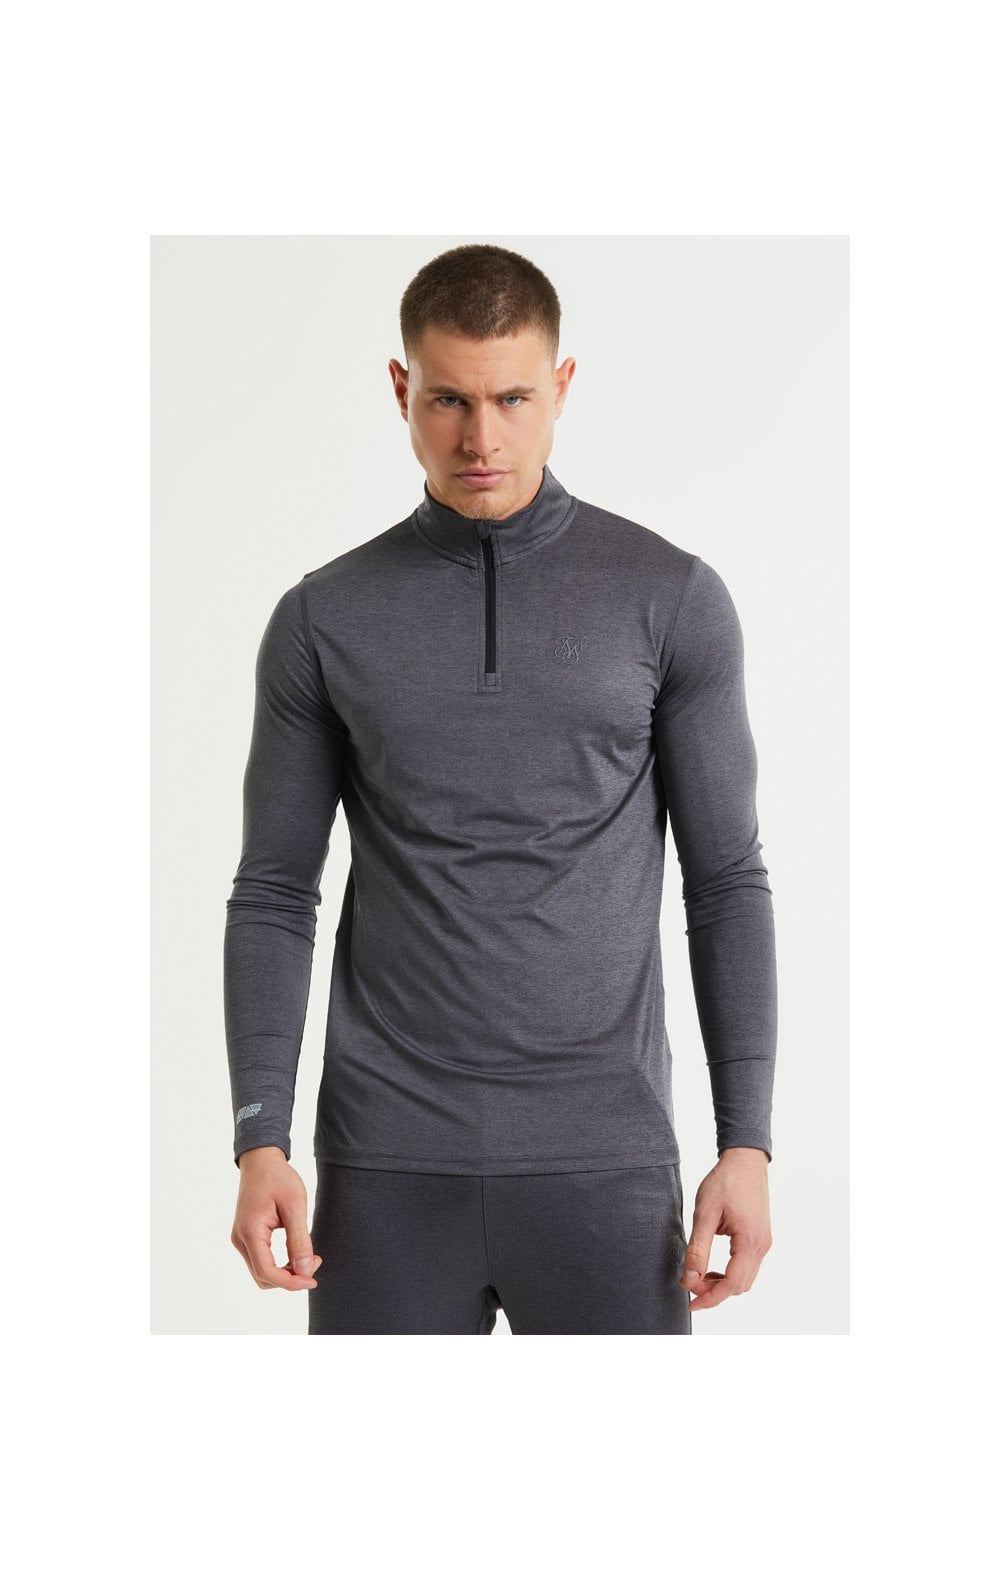 Load image into Gallery viewer, SikSilk Pressure Zip Funnel Neck - Charcoal Marl (2)